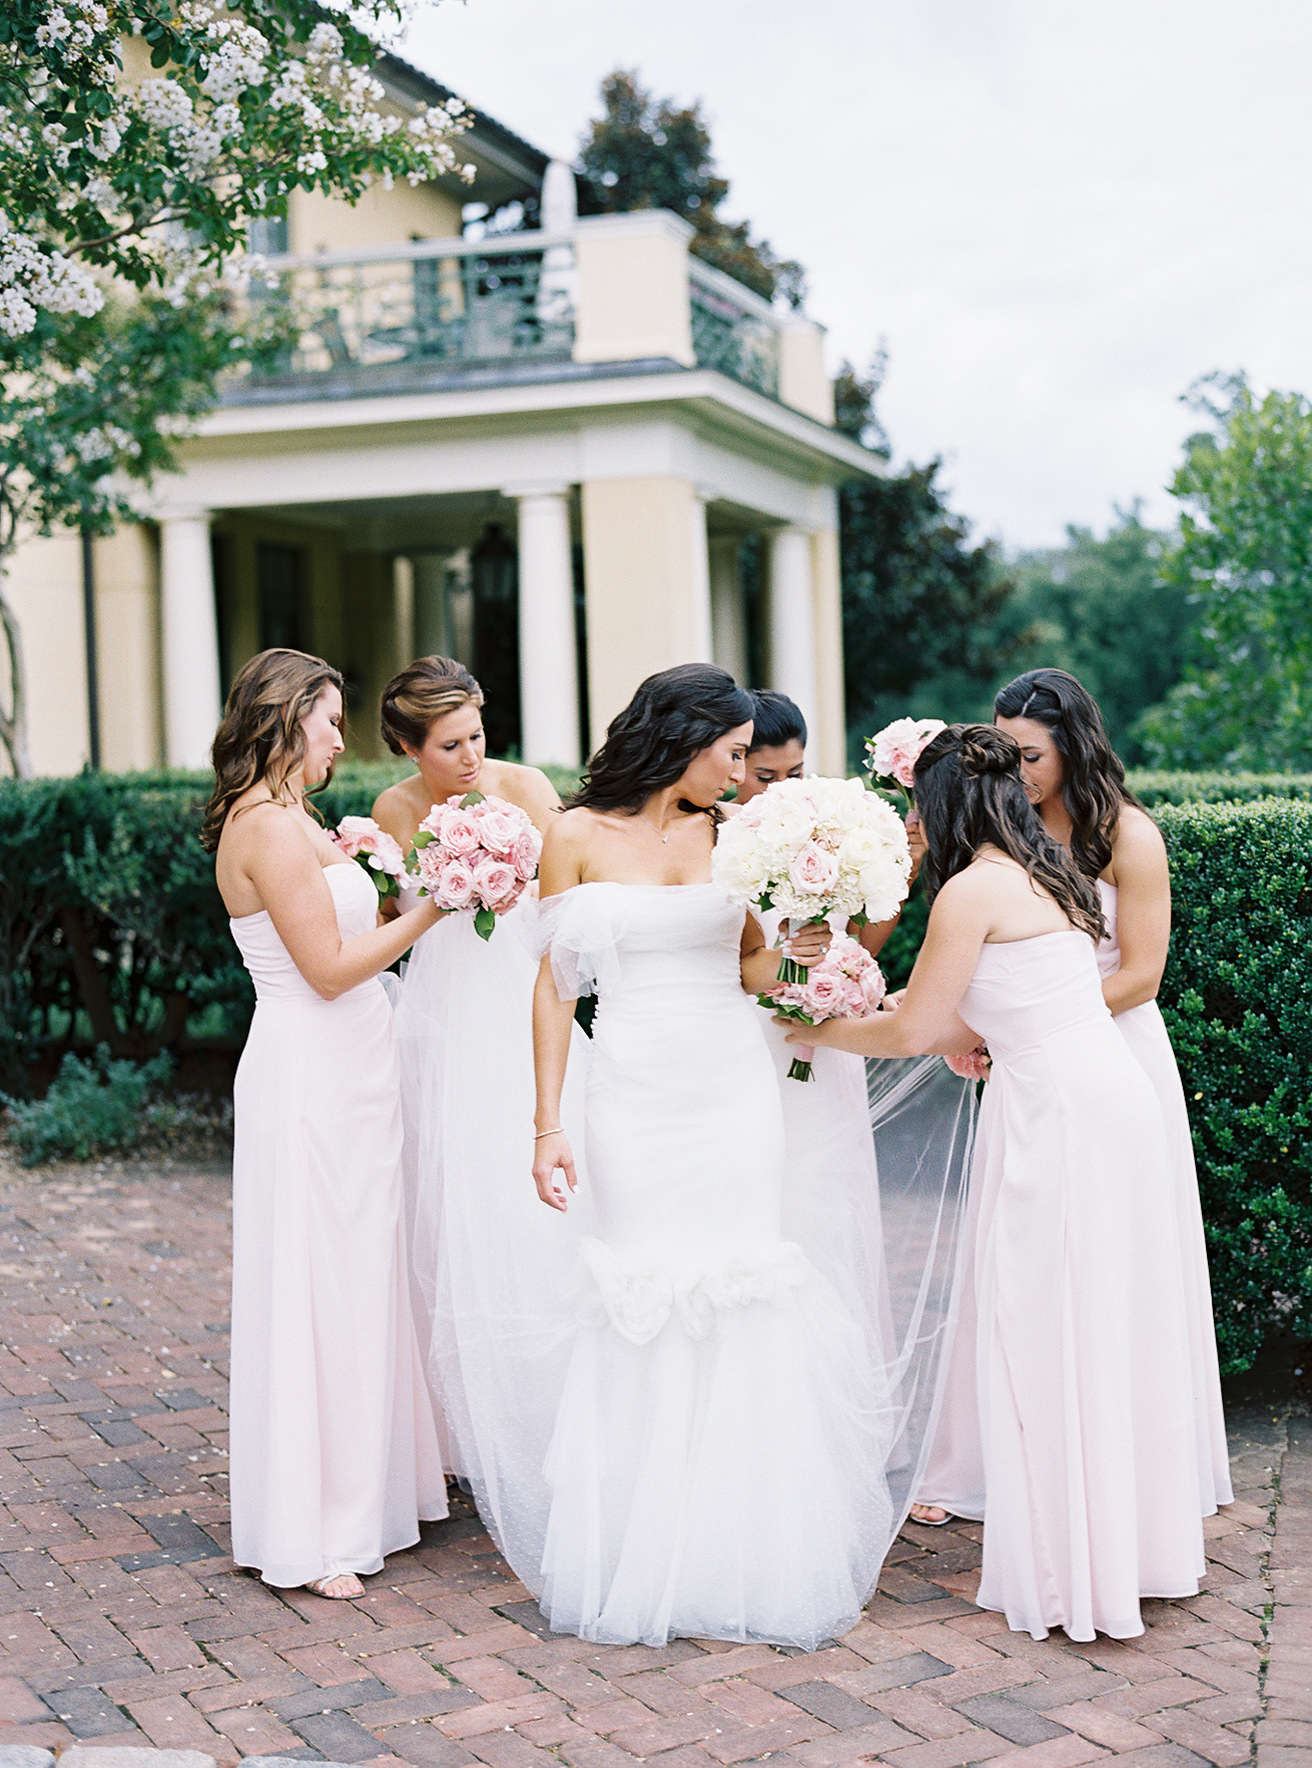 0192adam barnes photography keswick hall charlottesville virginia wedding.jpg